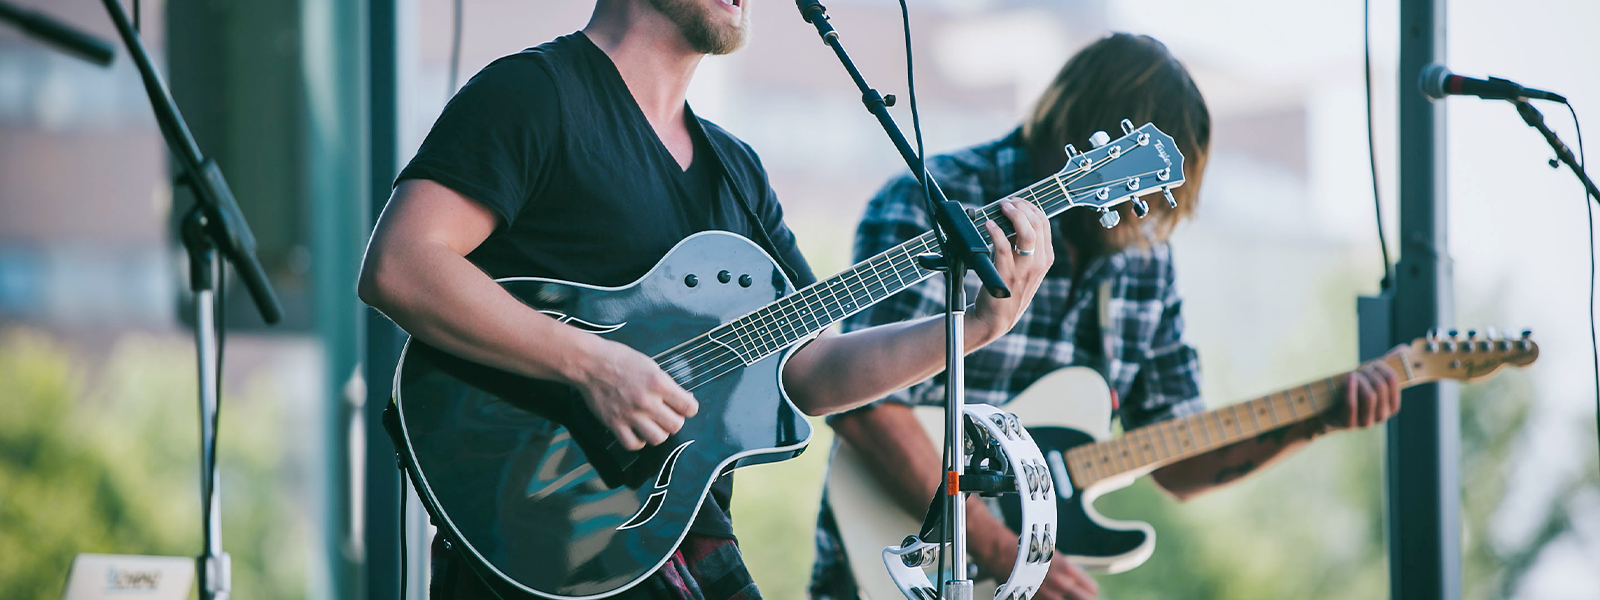 Two people playing guitars on stage